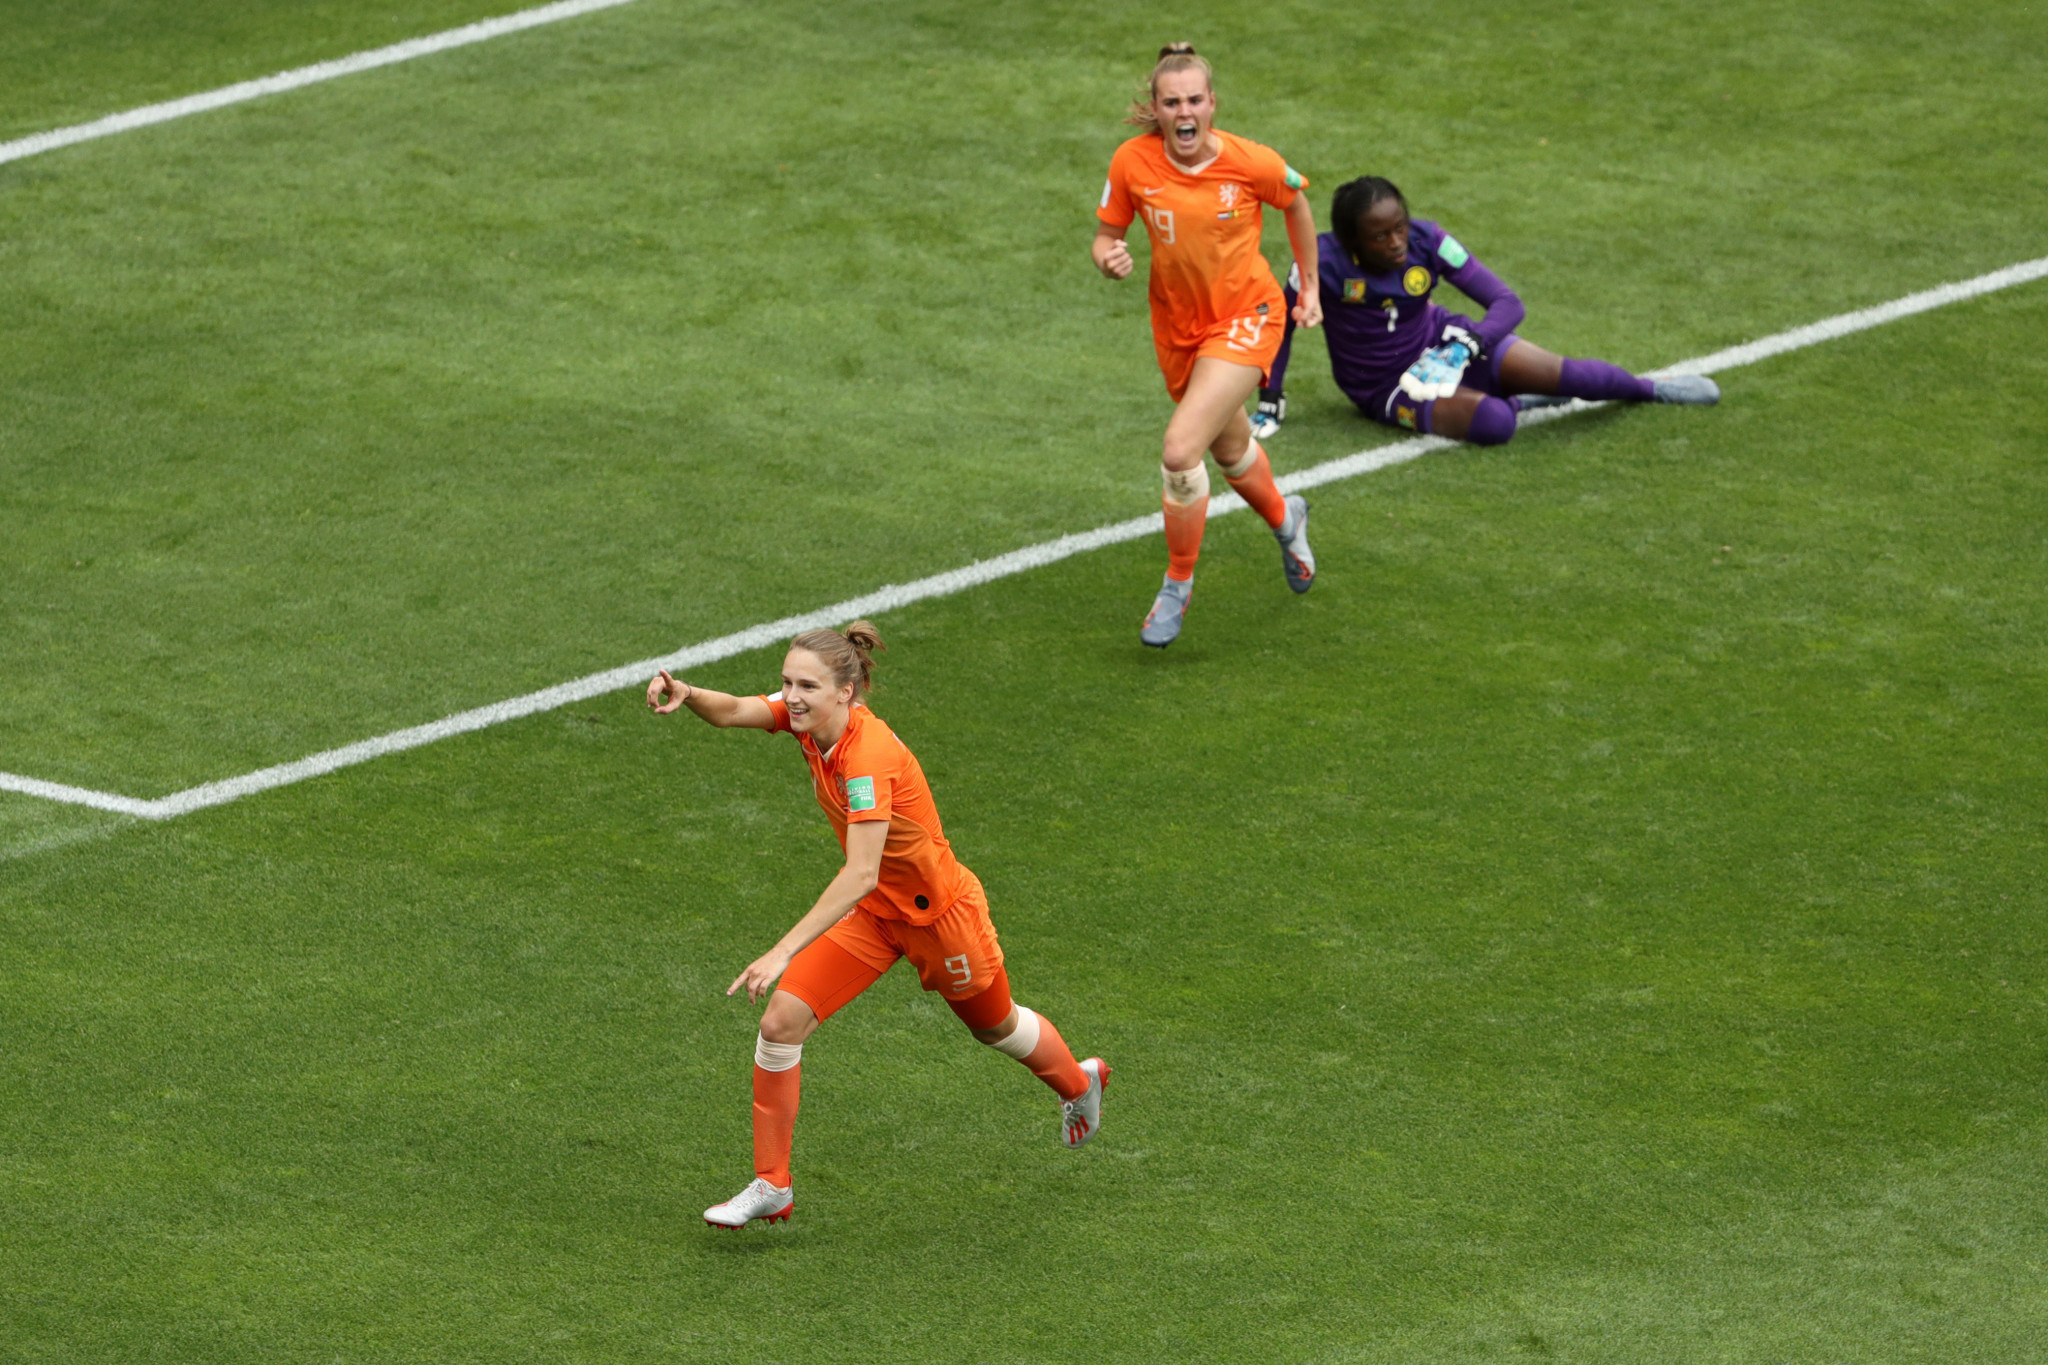 Vivianne Miedema has become the all-time top scorer for the Netherlands with 60 goals ©Getty Images